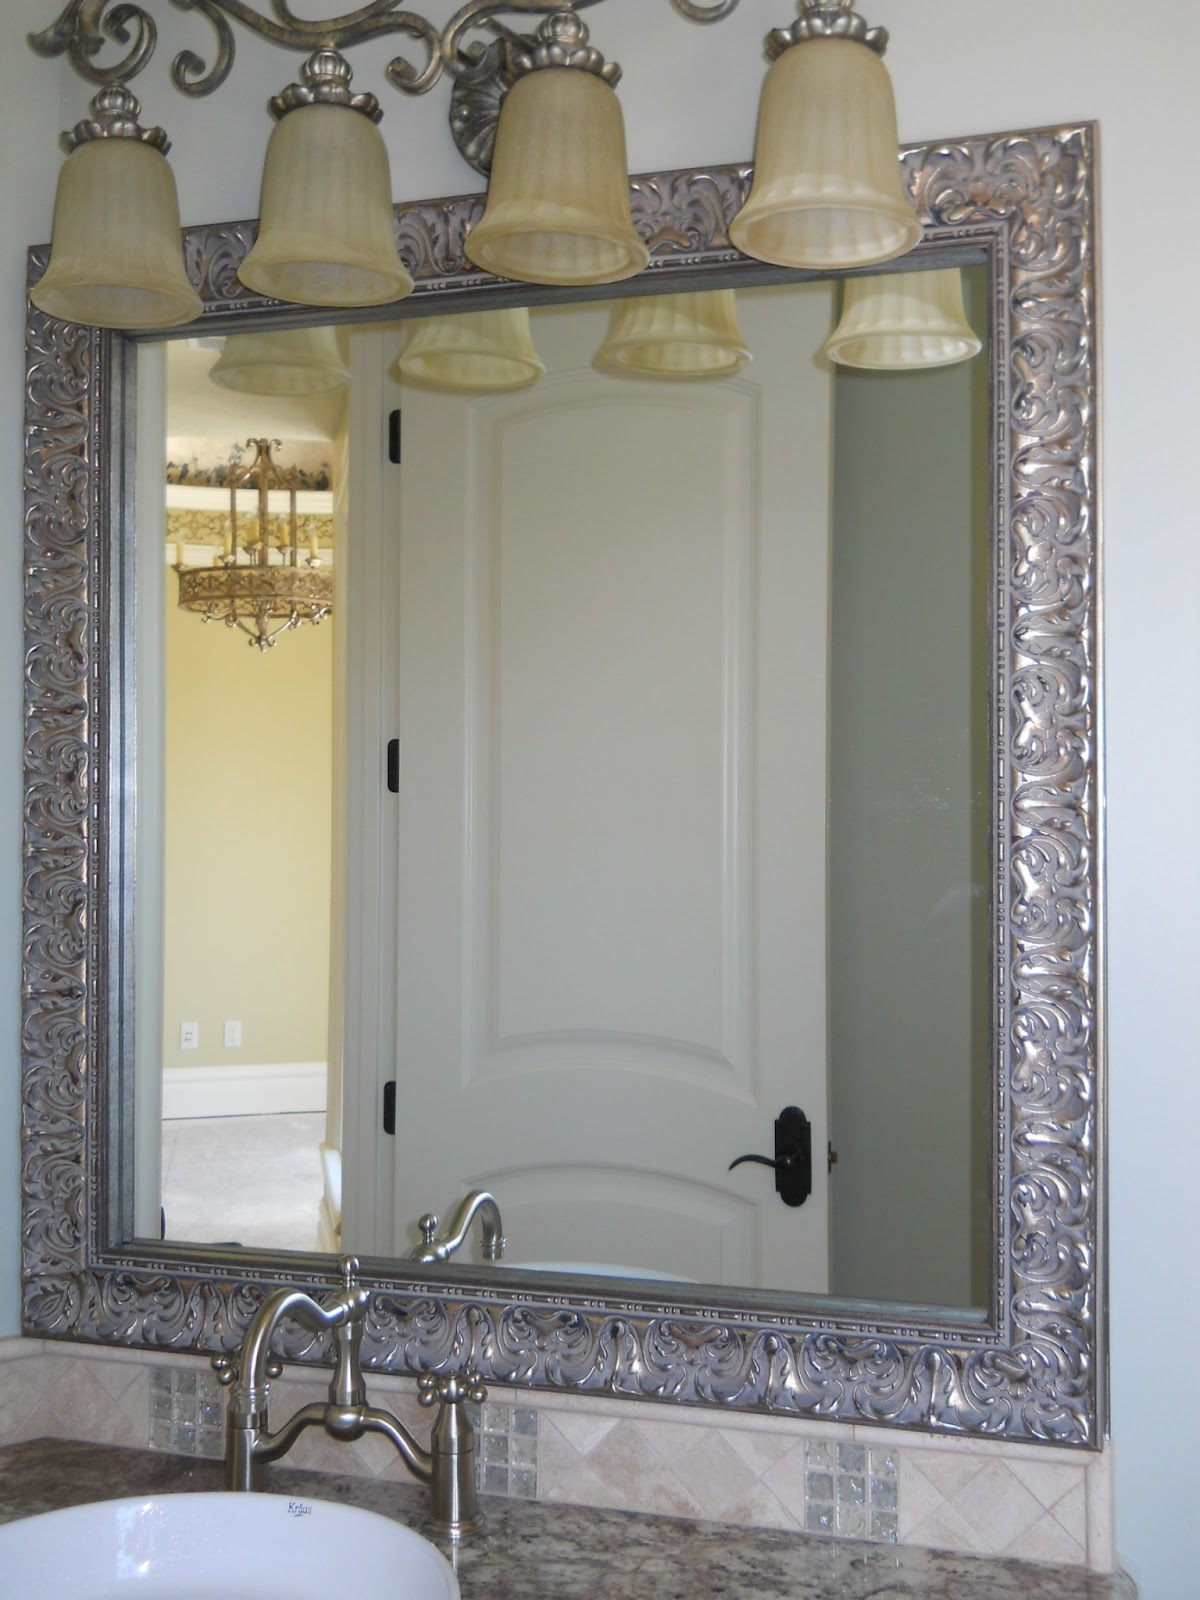 home trends pics hanging bathroom mirror wall for cabinet depot and double also ideas of vanity pict style fascinating inspiration colton